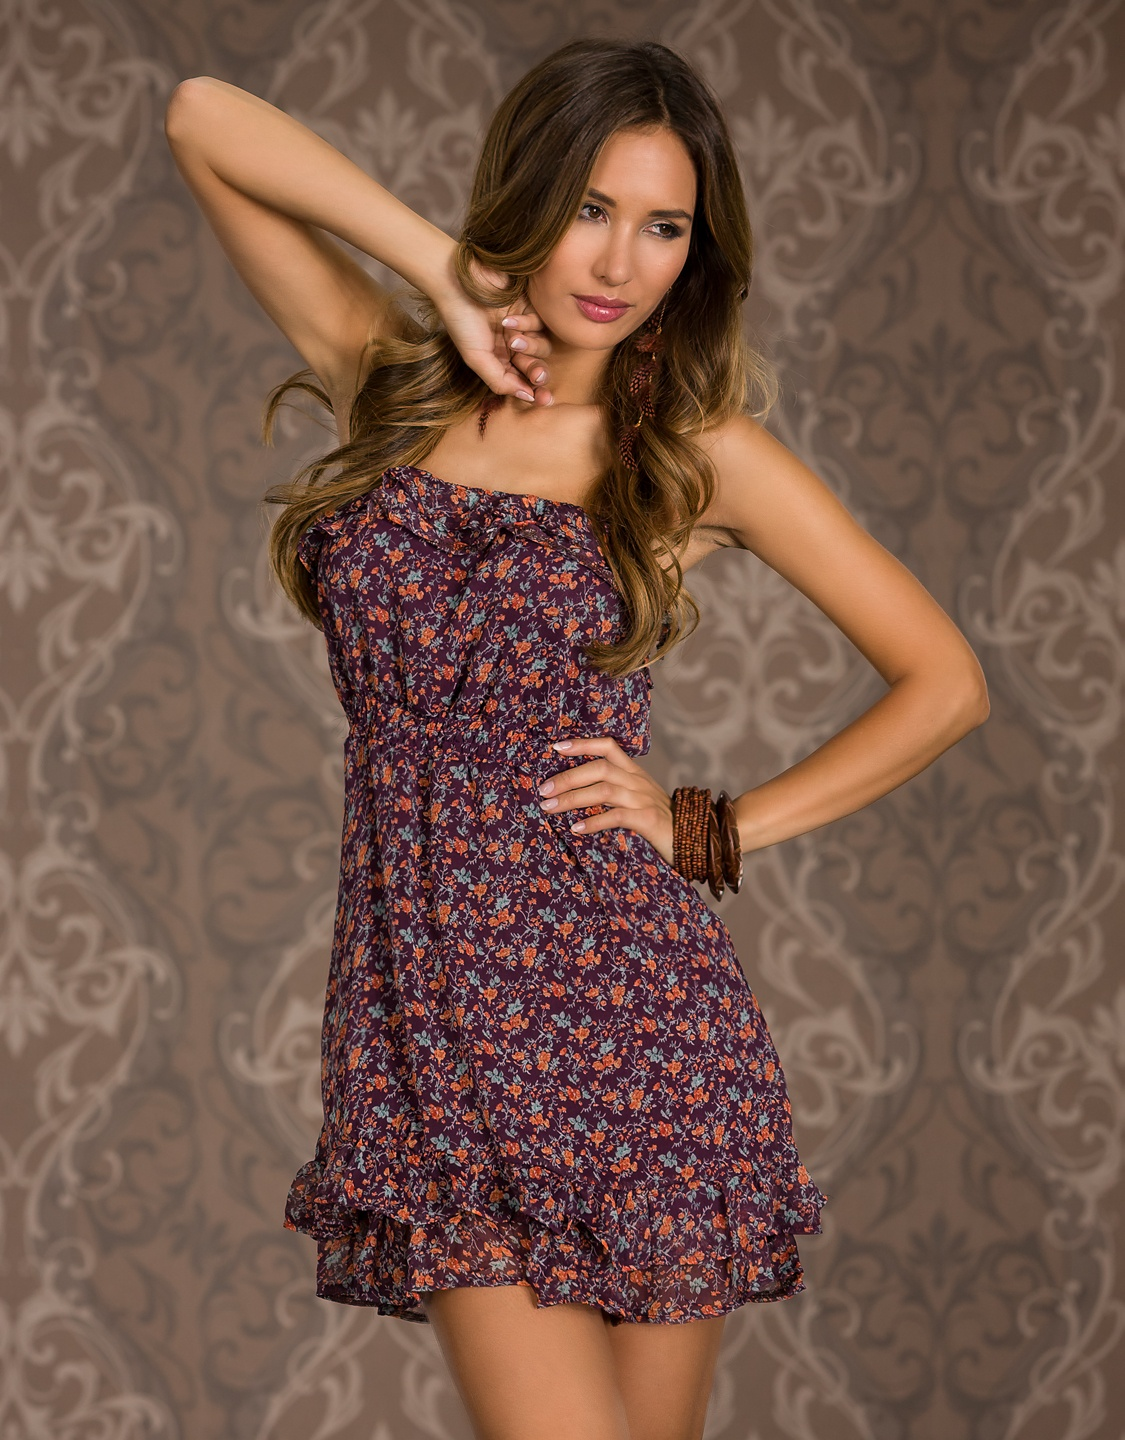 Purple Strapless Ruffled Summer Dress With Flower Print